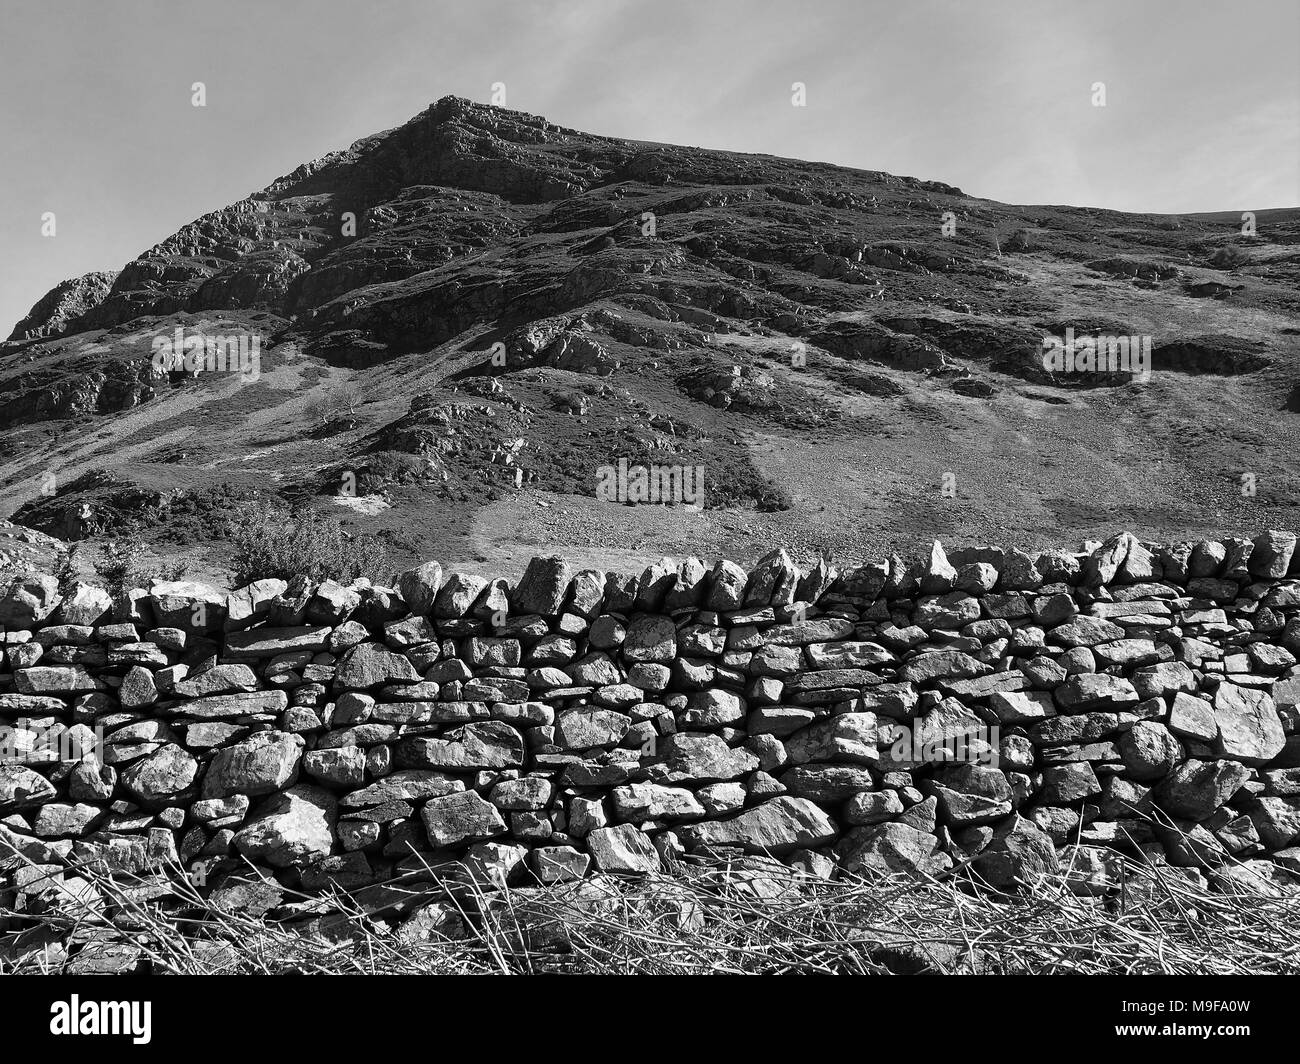 Roadside Dry Stone wall, with The mass of Grasmoor behind, Lake District National Park, Cumbria, United Kingdom - Stock Image